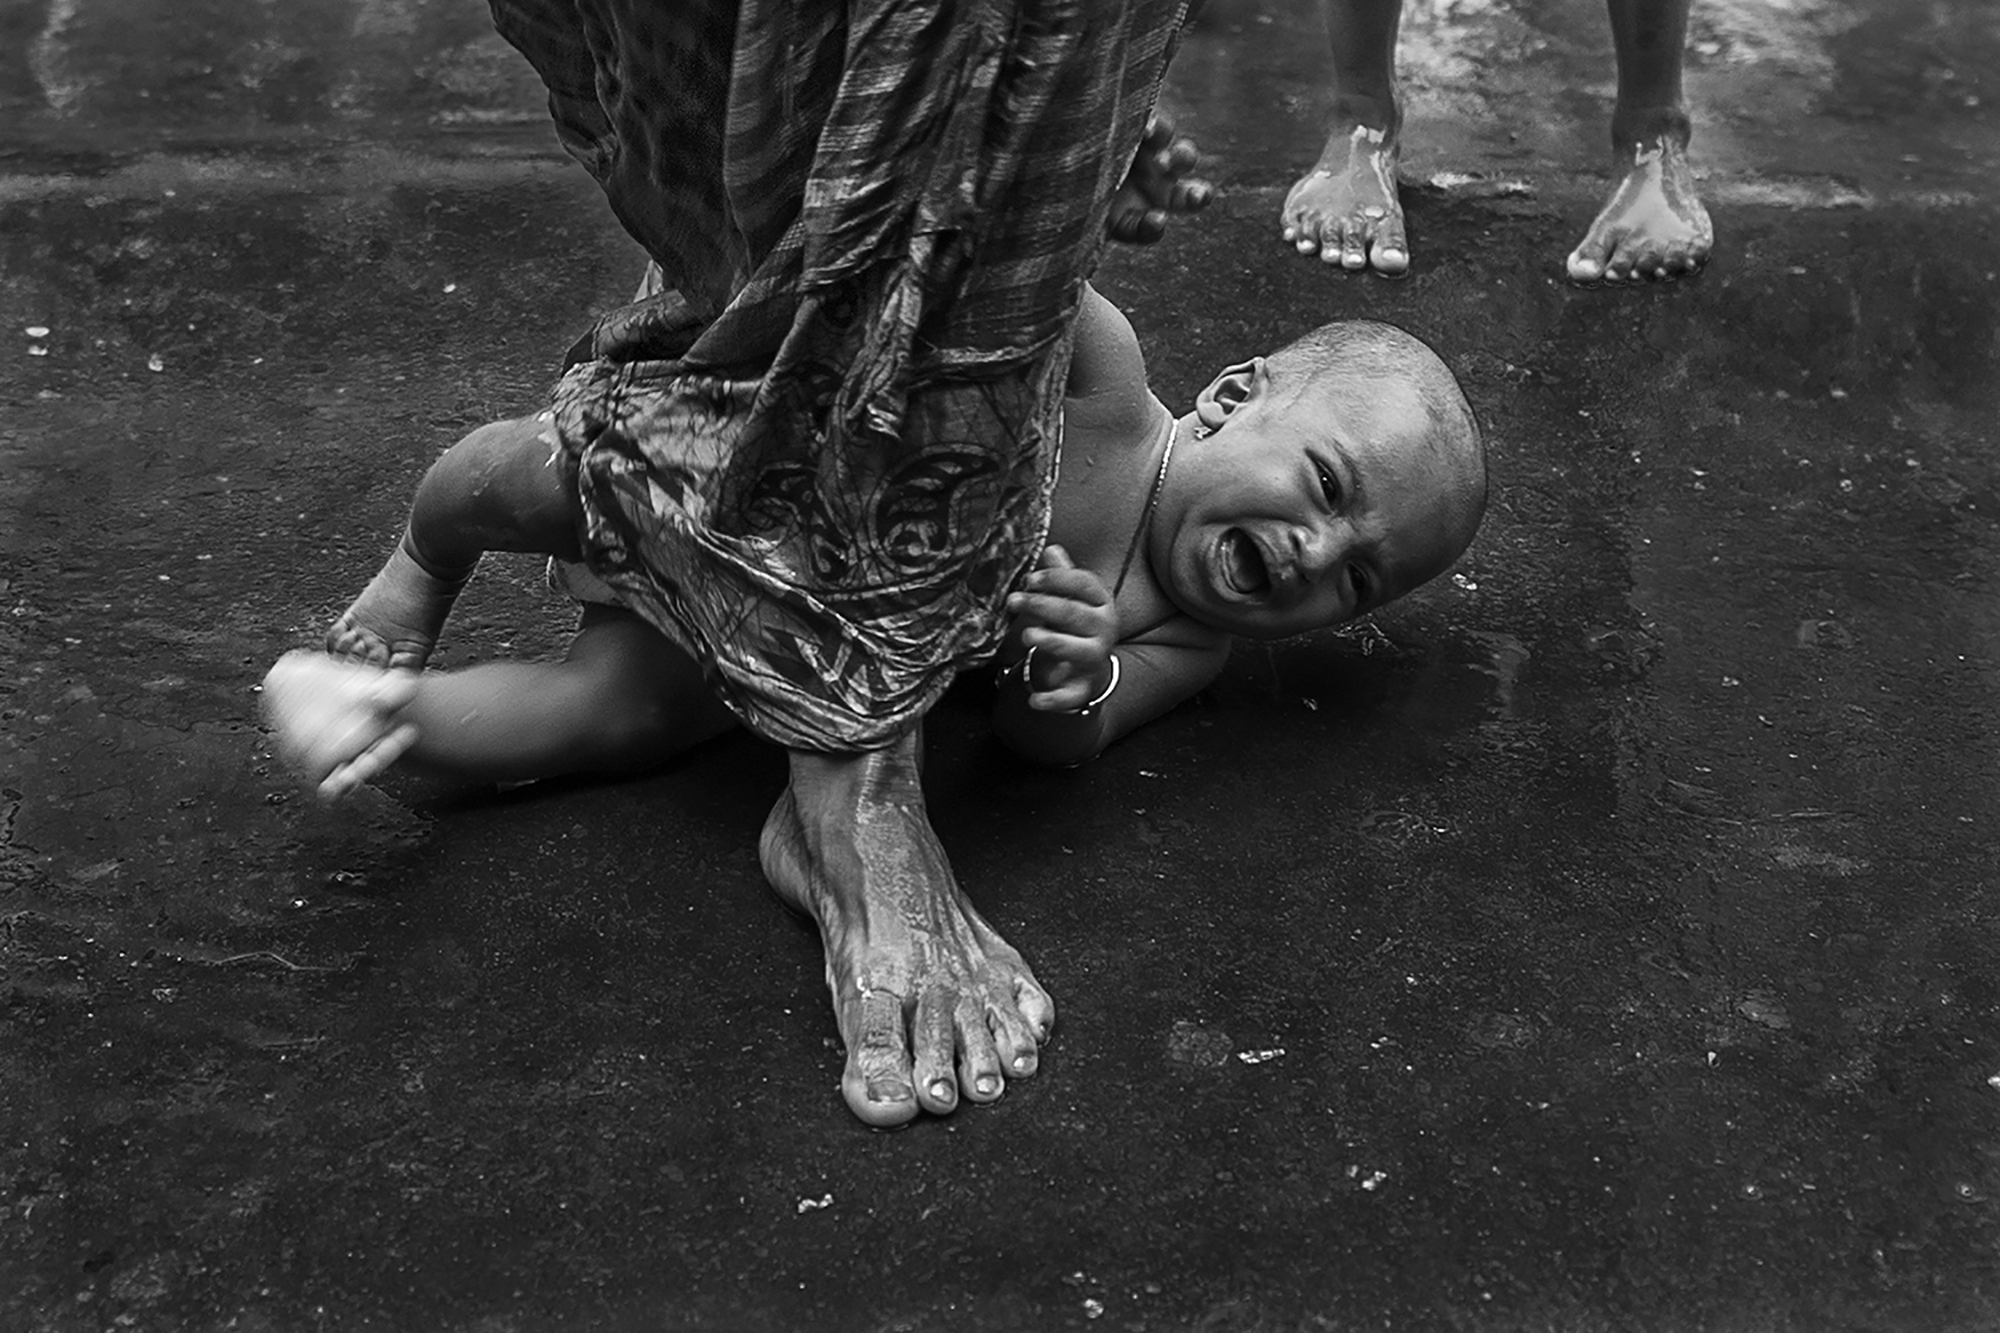 awards india winning sony national award photographs indian amitava chandra photographers win winners open shortlist winner most pious steps